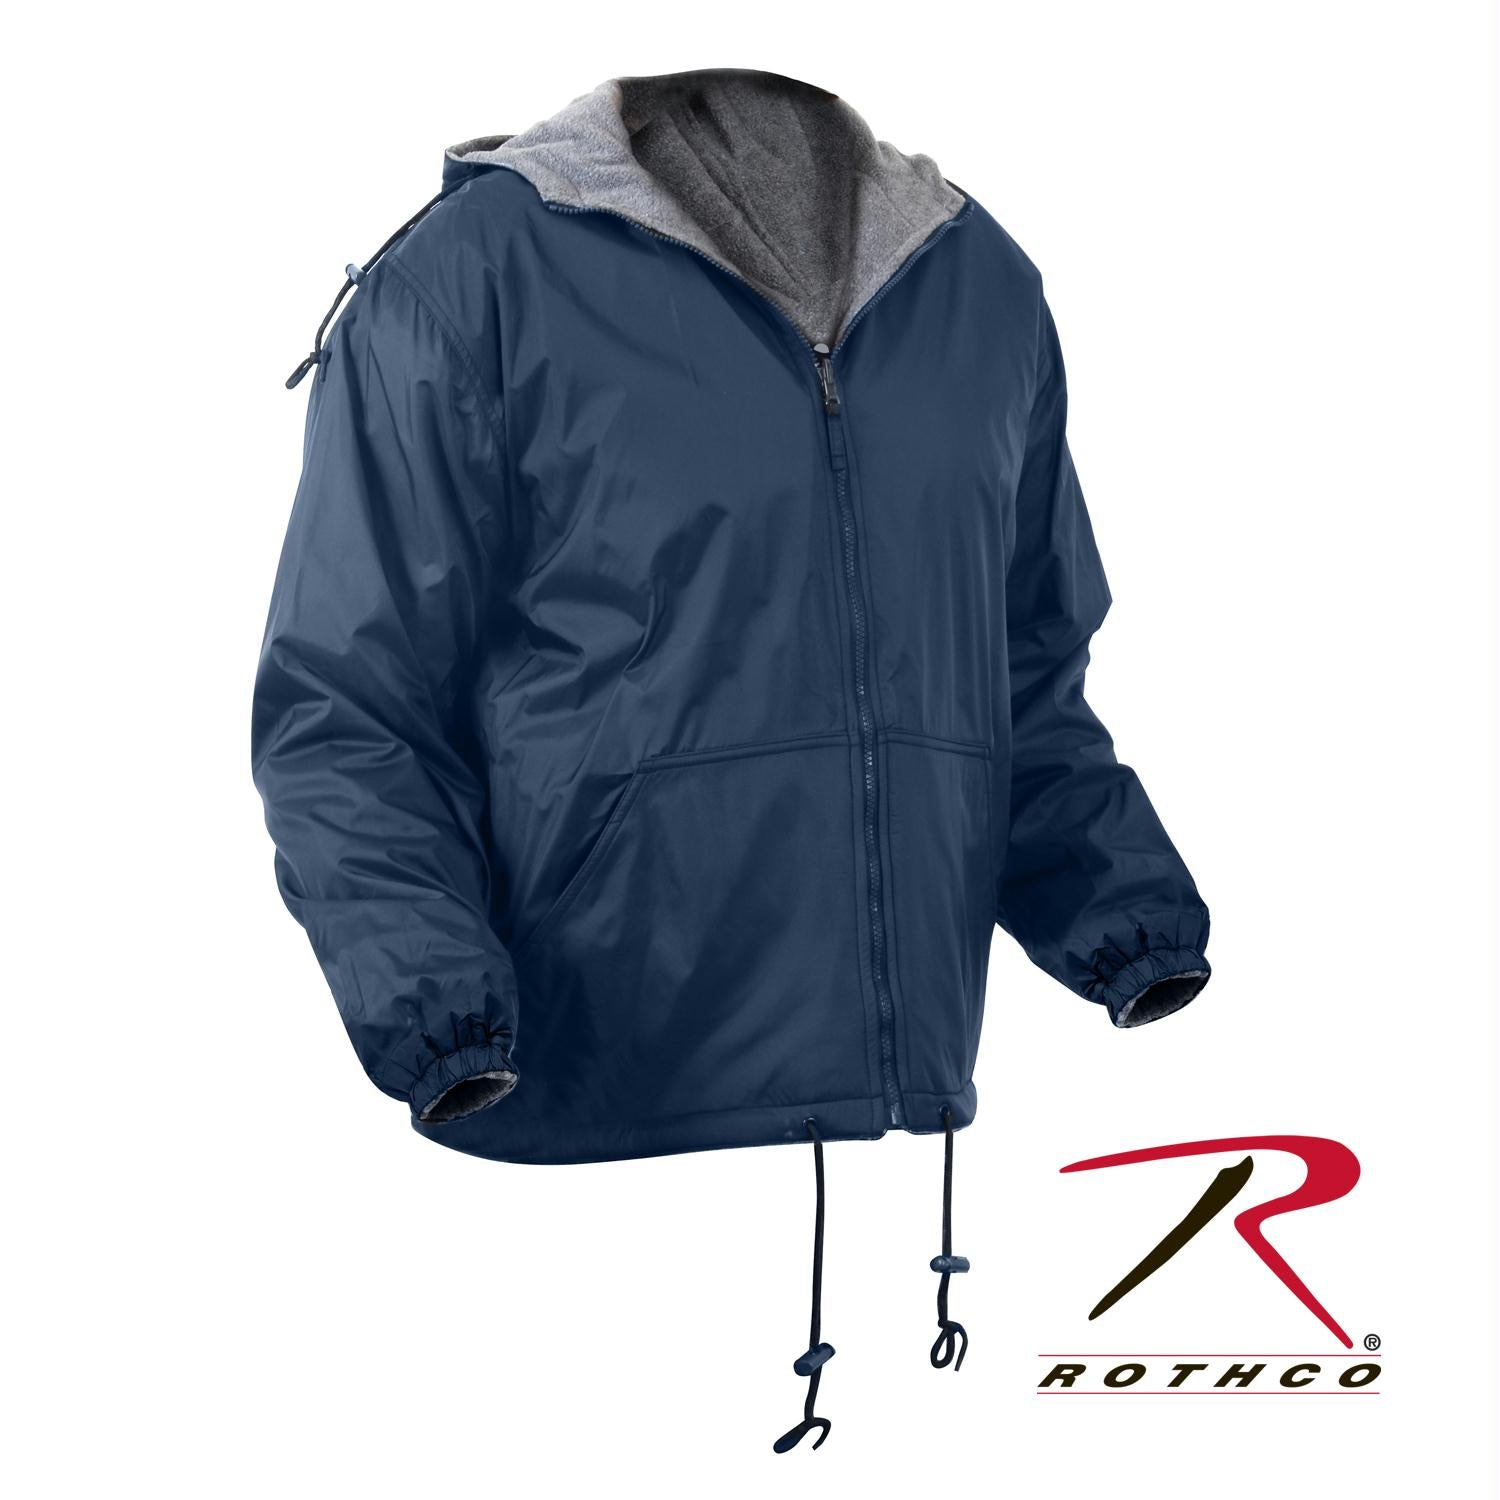 Rothco Reversible Lined Jacket With Hood - Navy Blue / 3XL